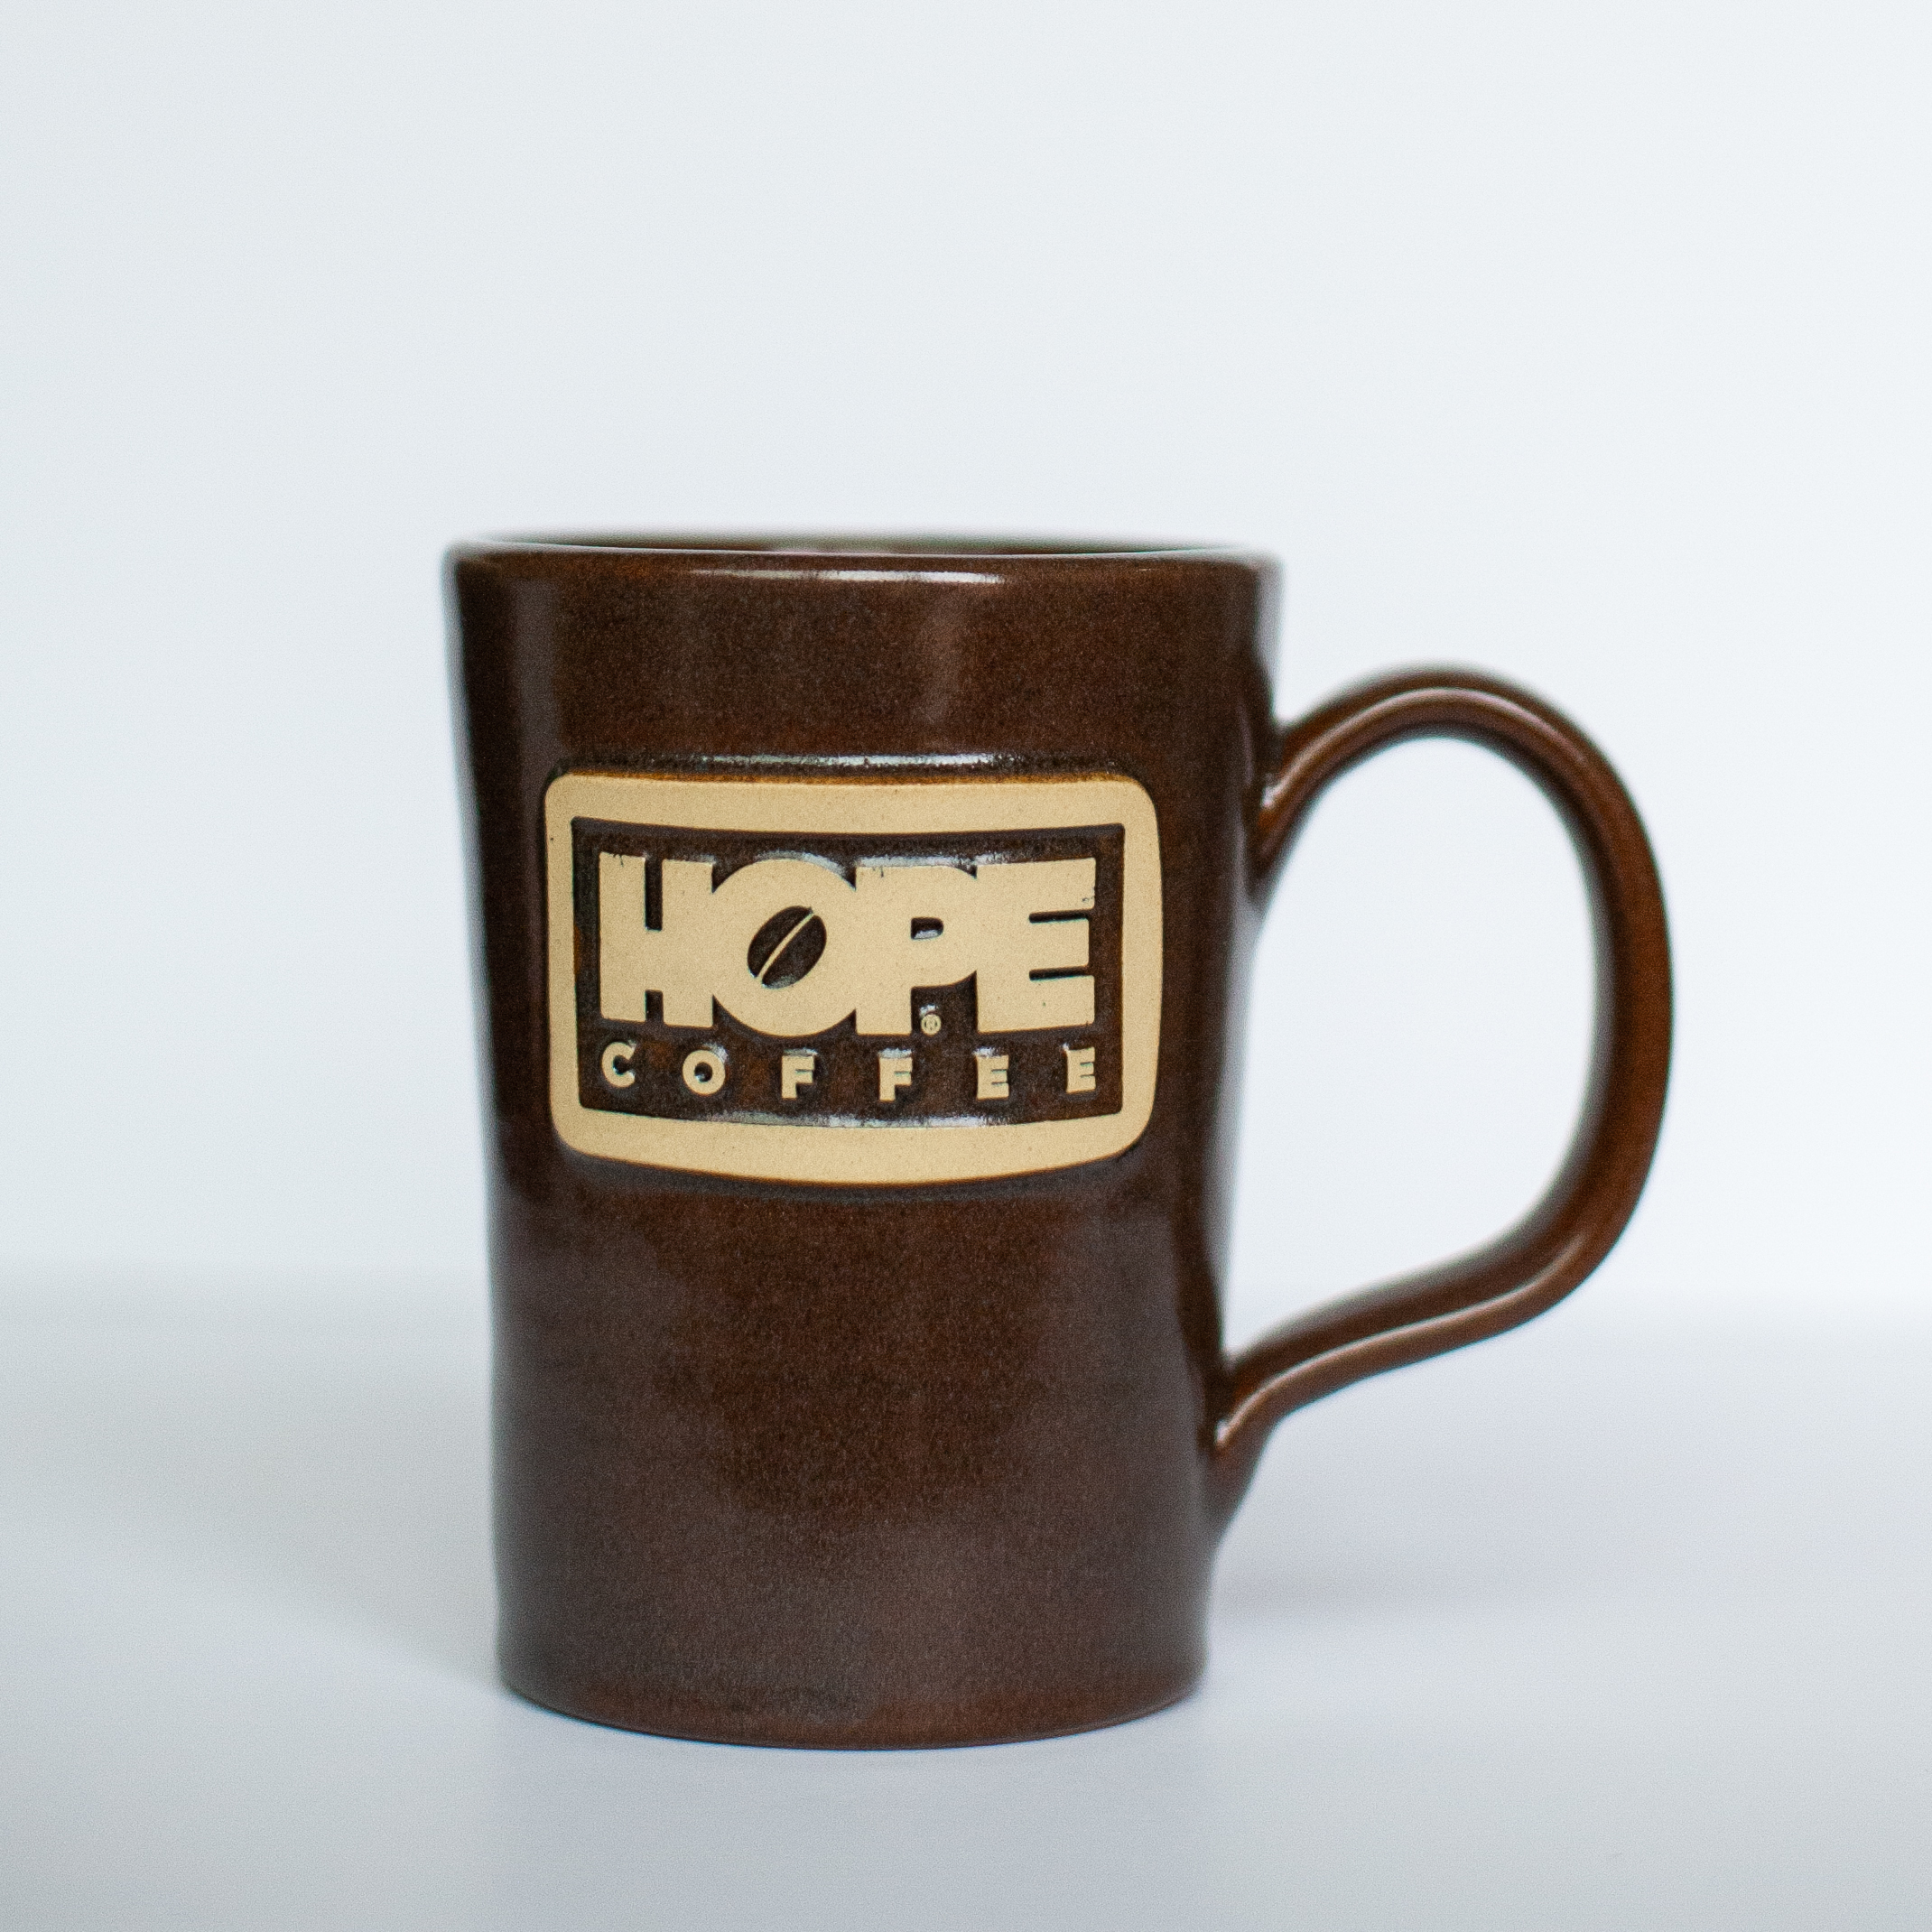 HOPE Coffee 12 oz Handcrafted Stoneware Mug - Abby Style 20020